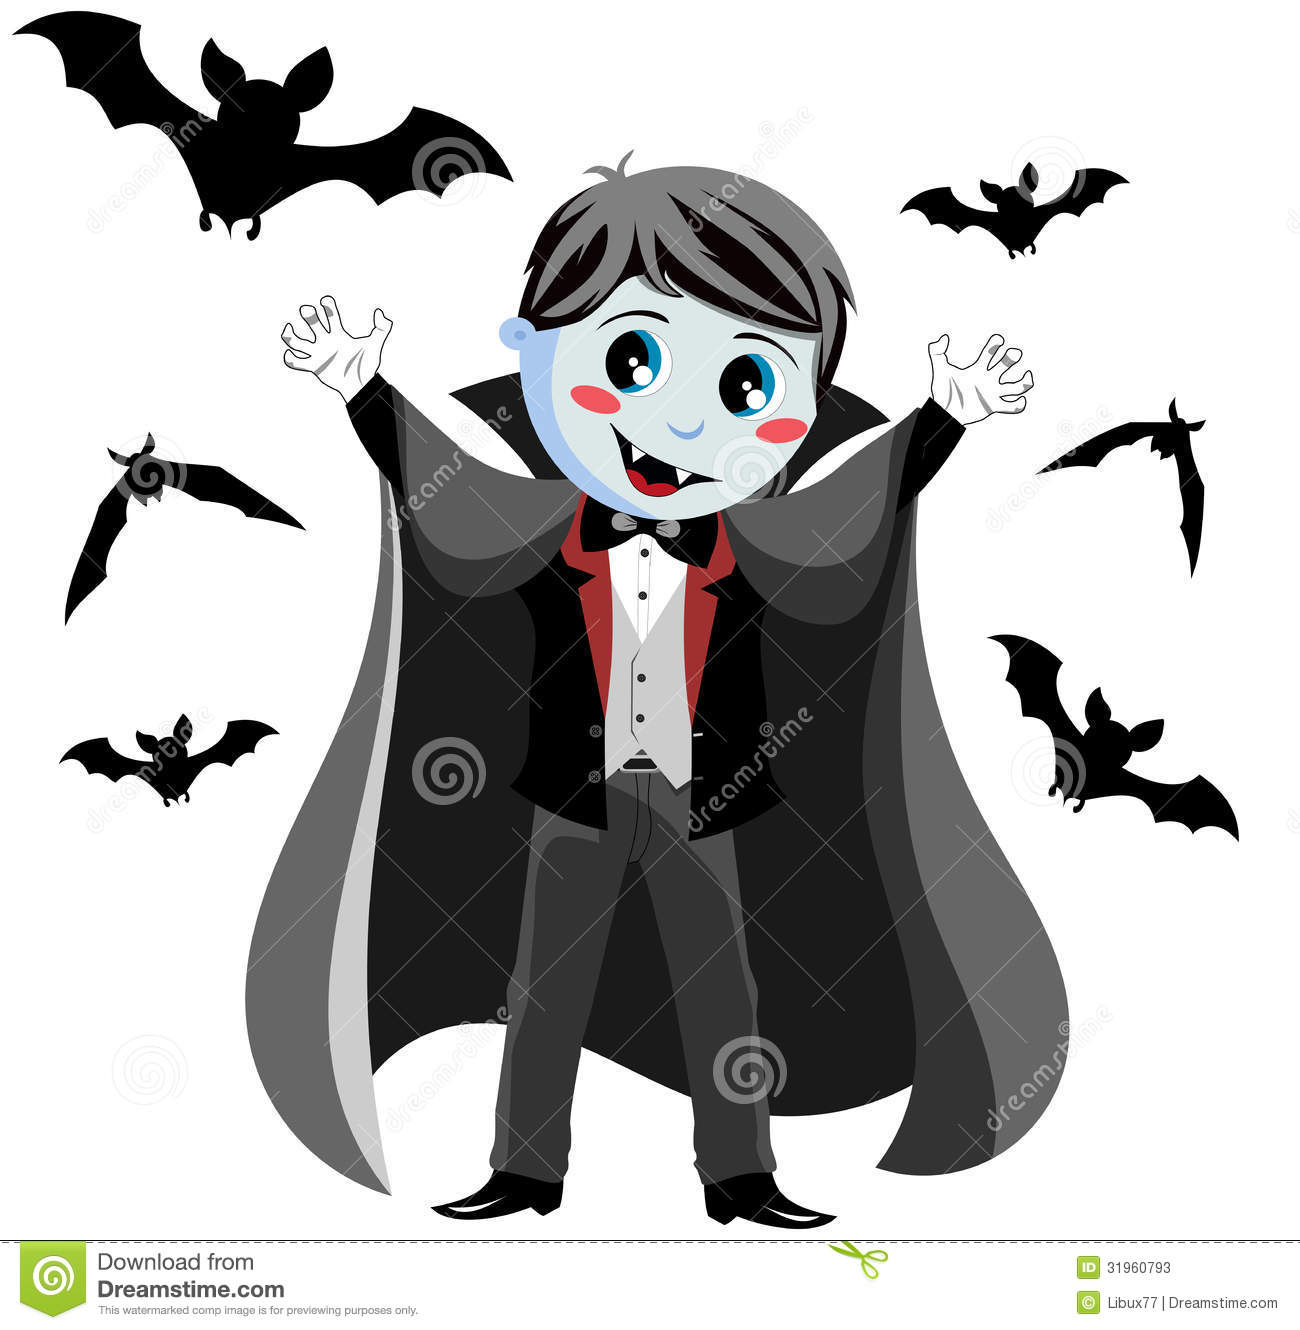 Image result for kid friendly dracula cartoon